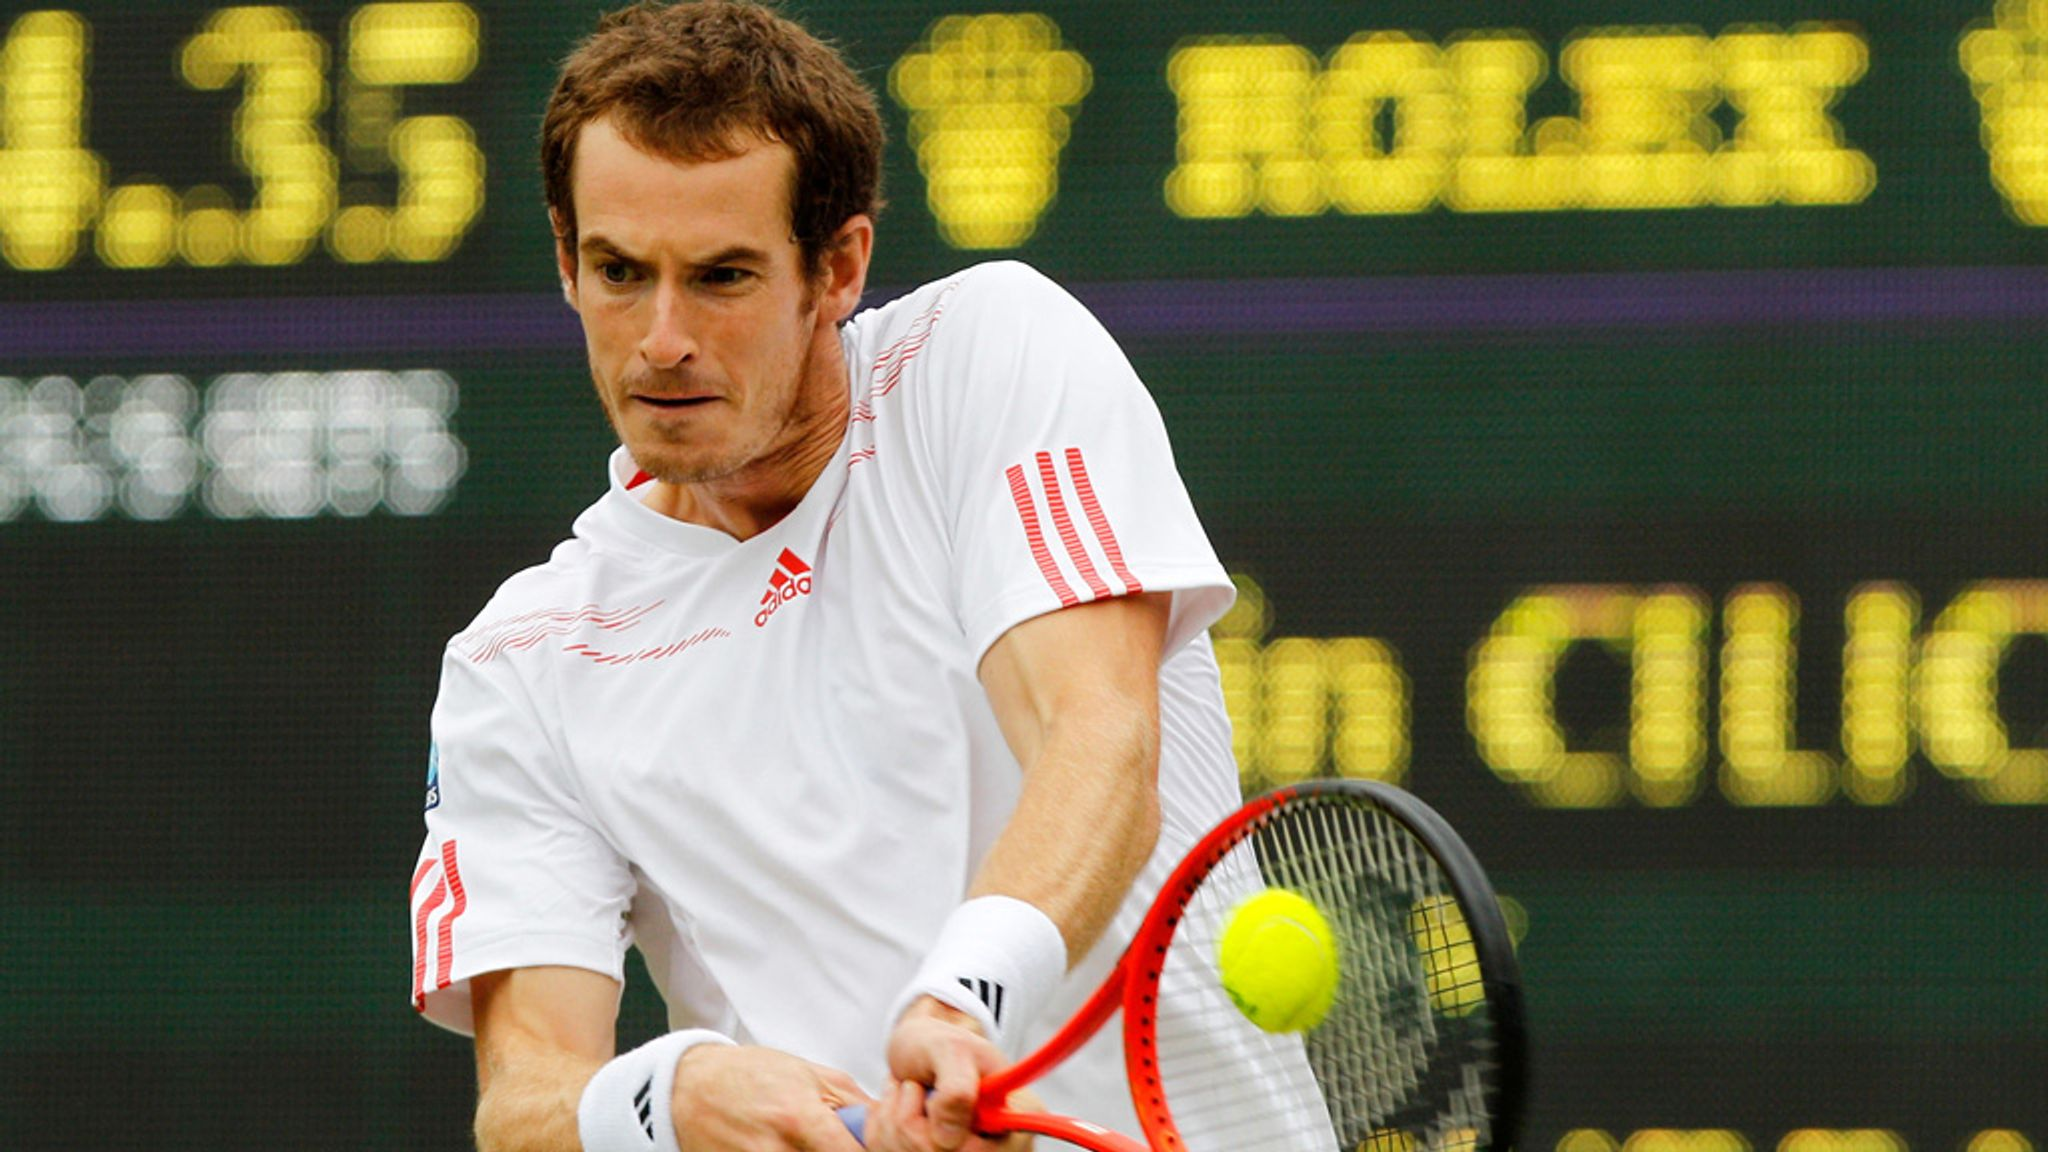 Cilic murray betting online bet on your baby philippines photos